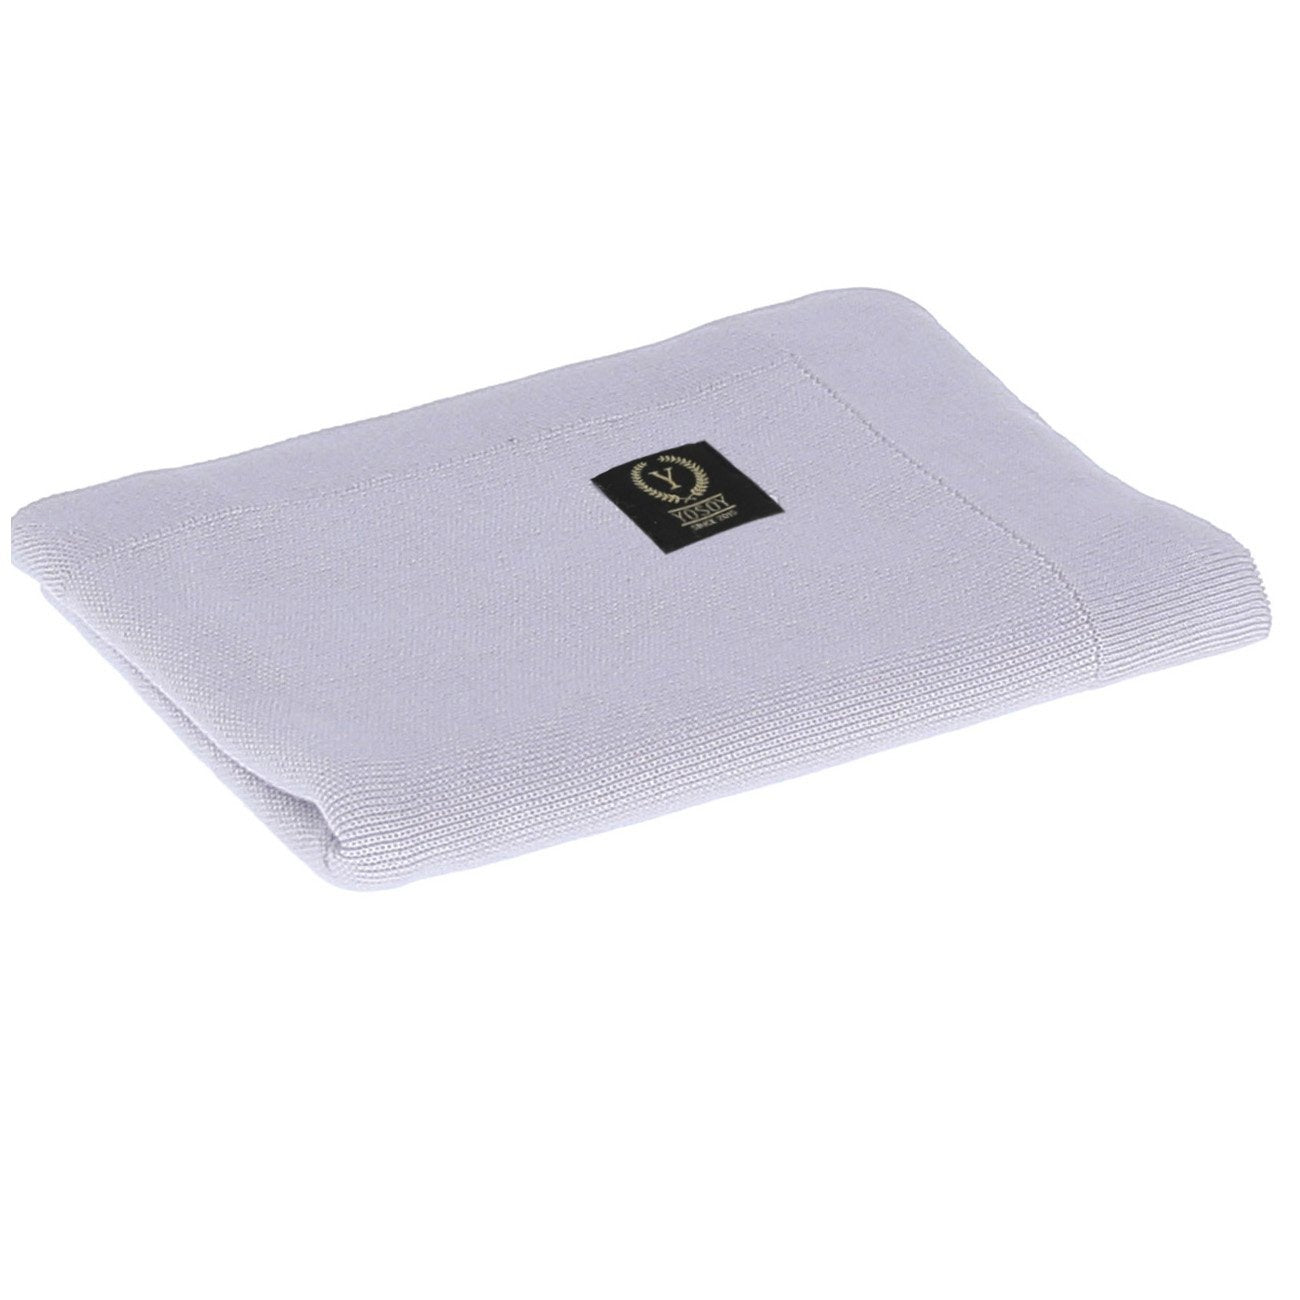 Light Bamboo Blanket Grey - MyLullaby